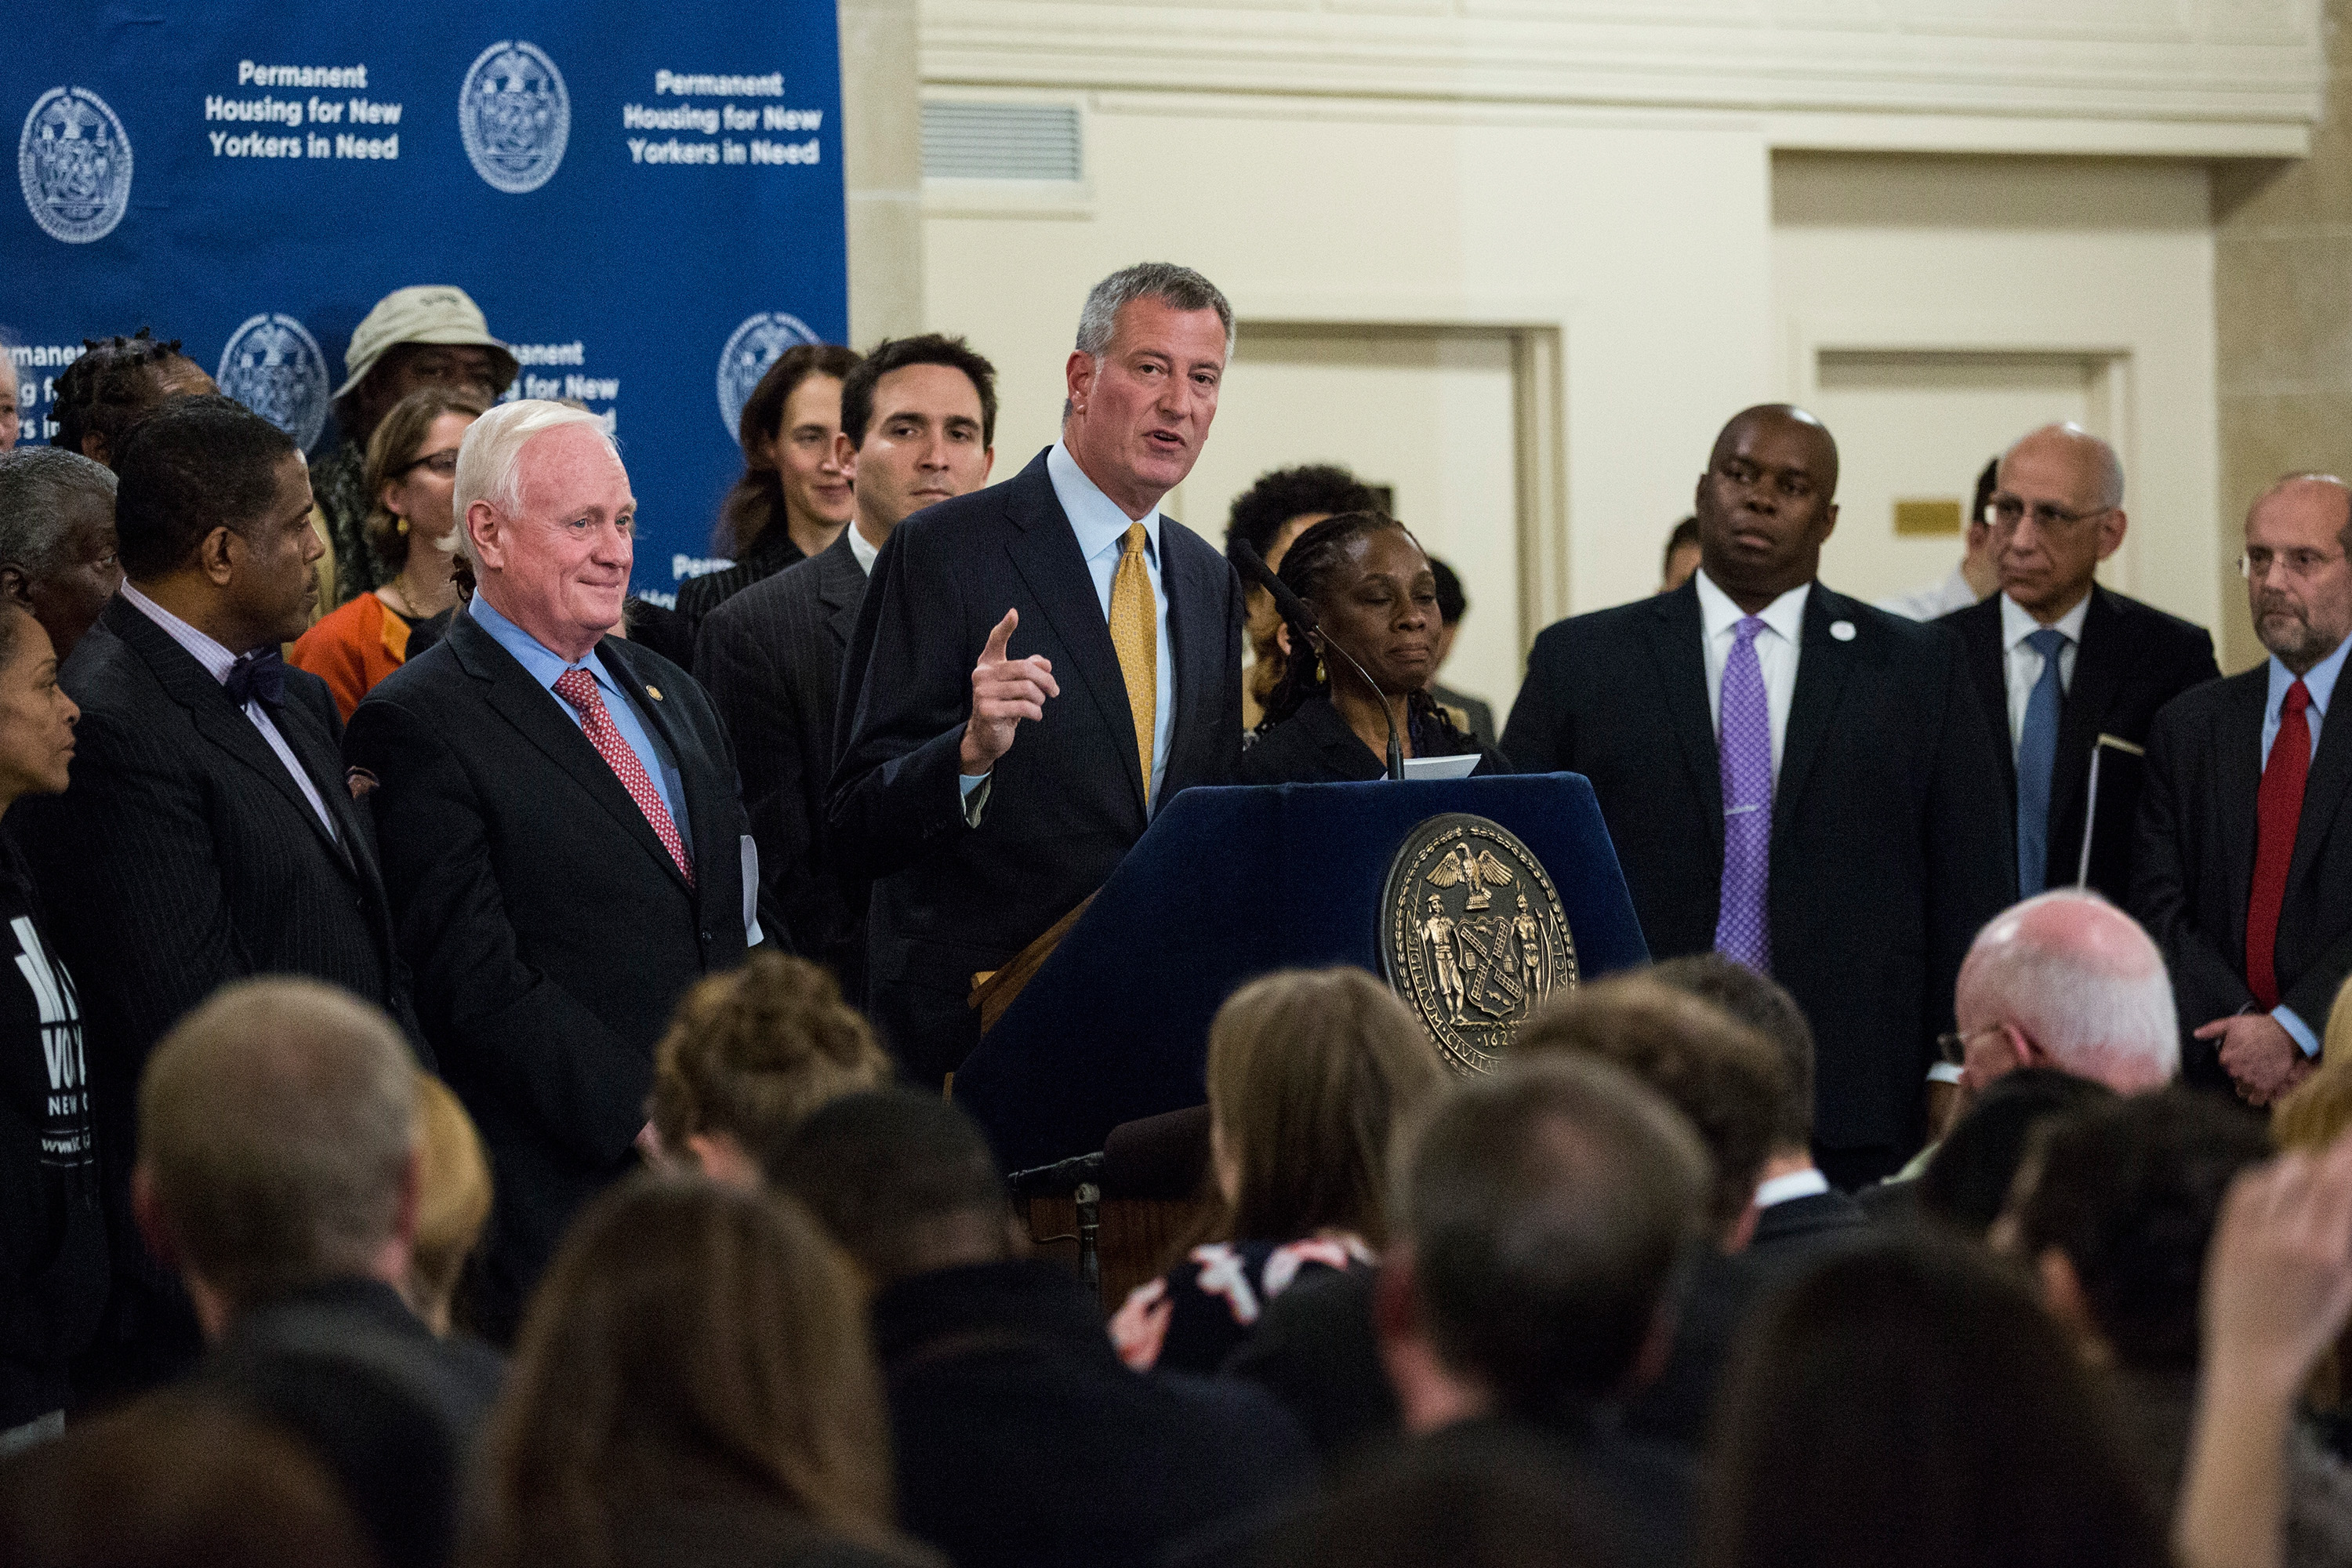 New York City Mayor Bill de Blasio announces a new initiative for housing for homeless people. (Photo by Andrew Burton/Getty Images)